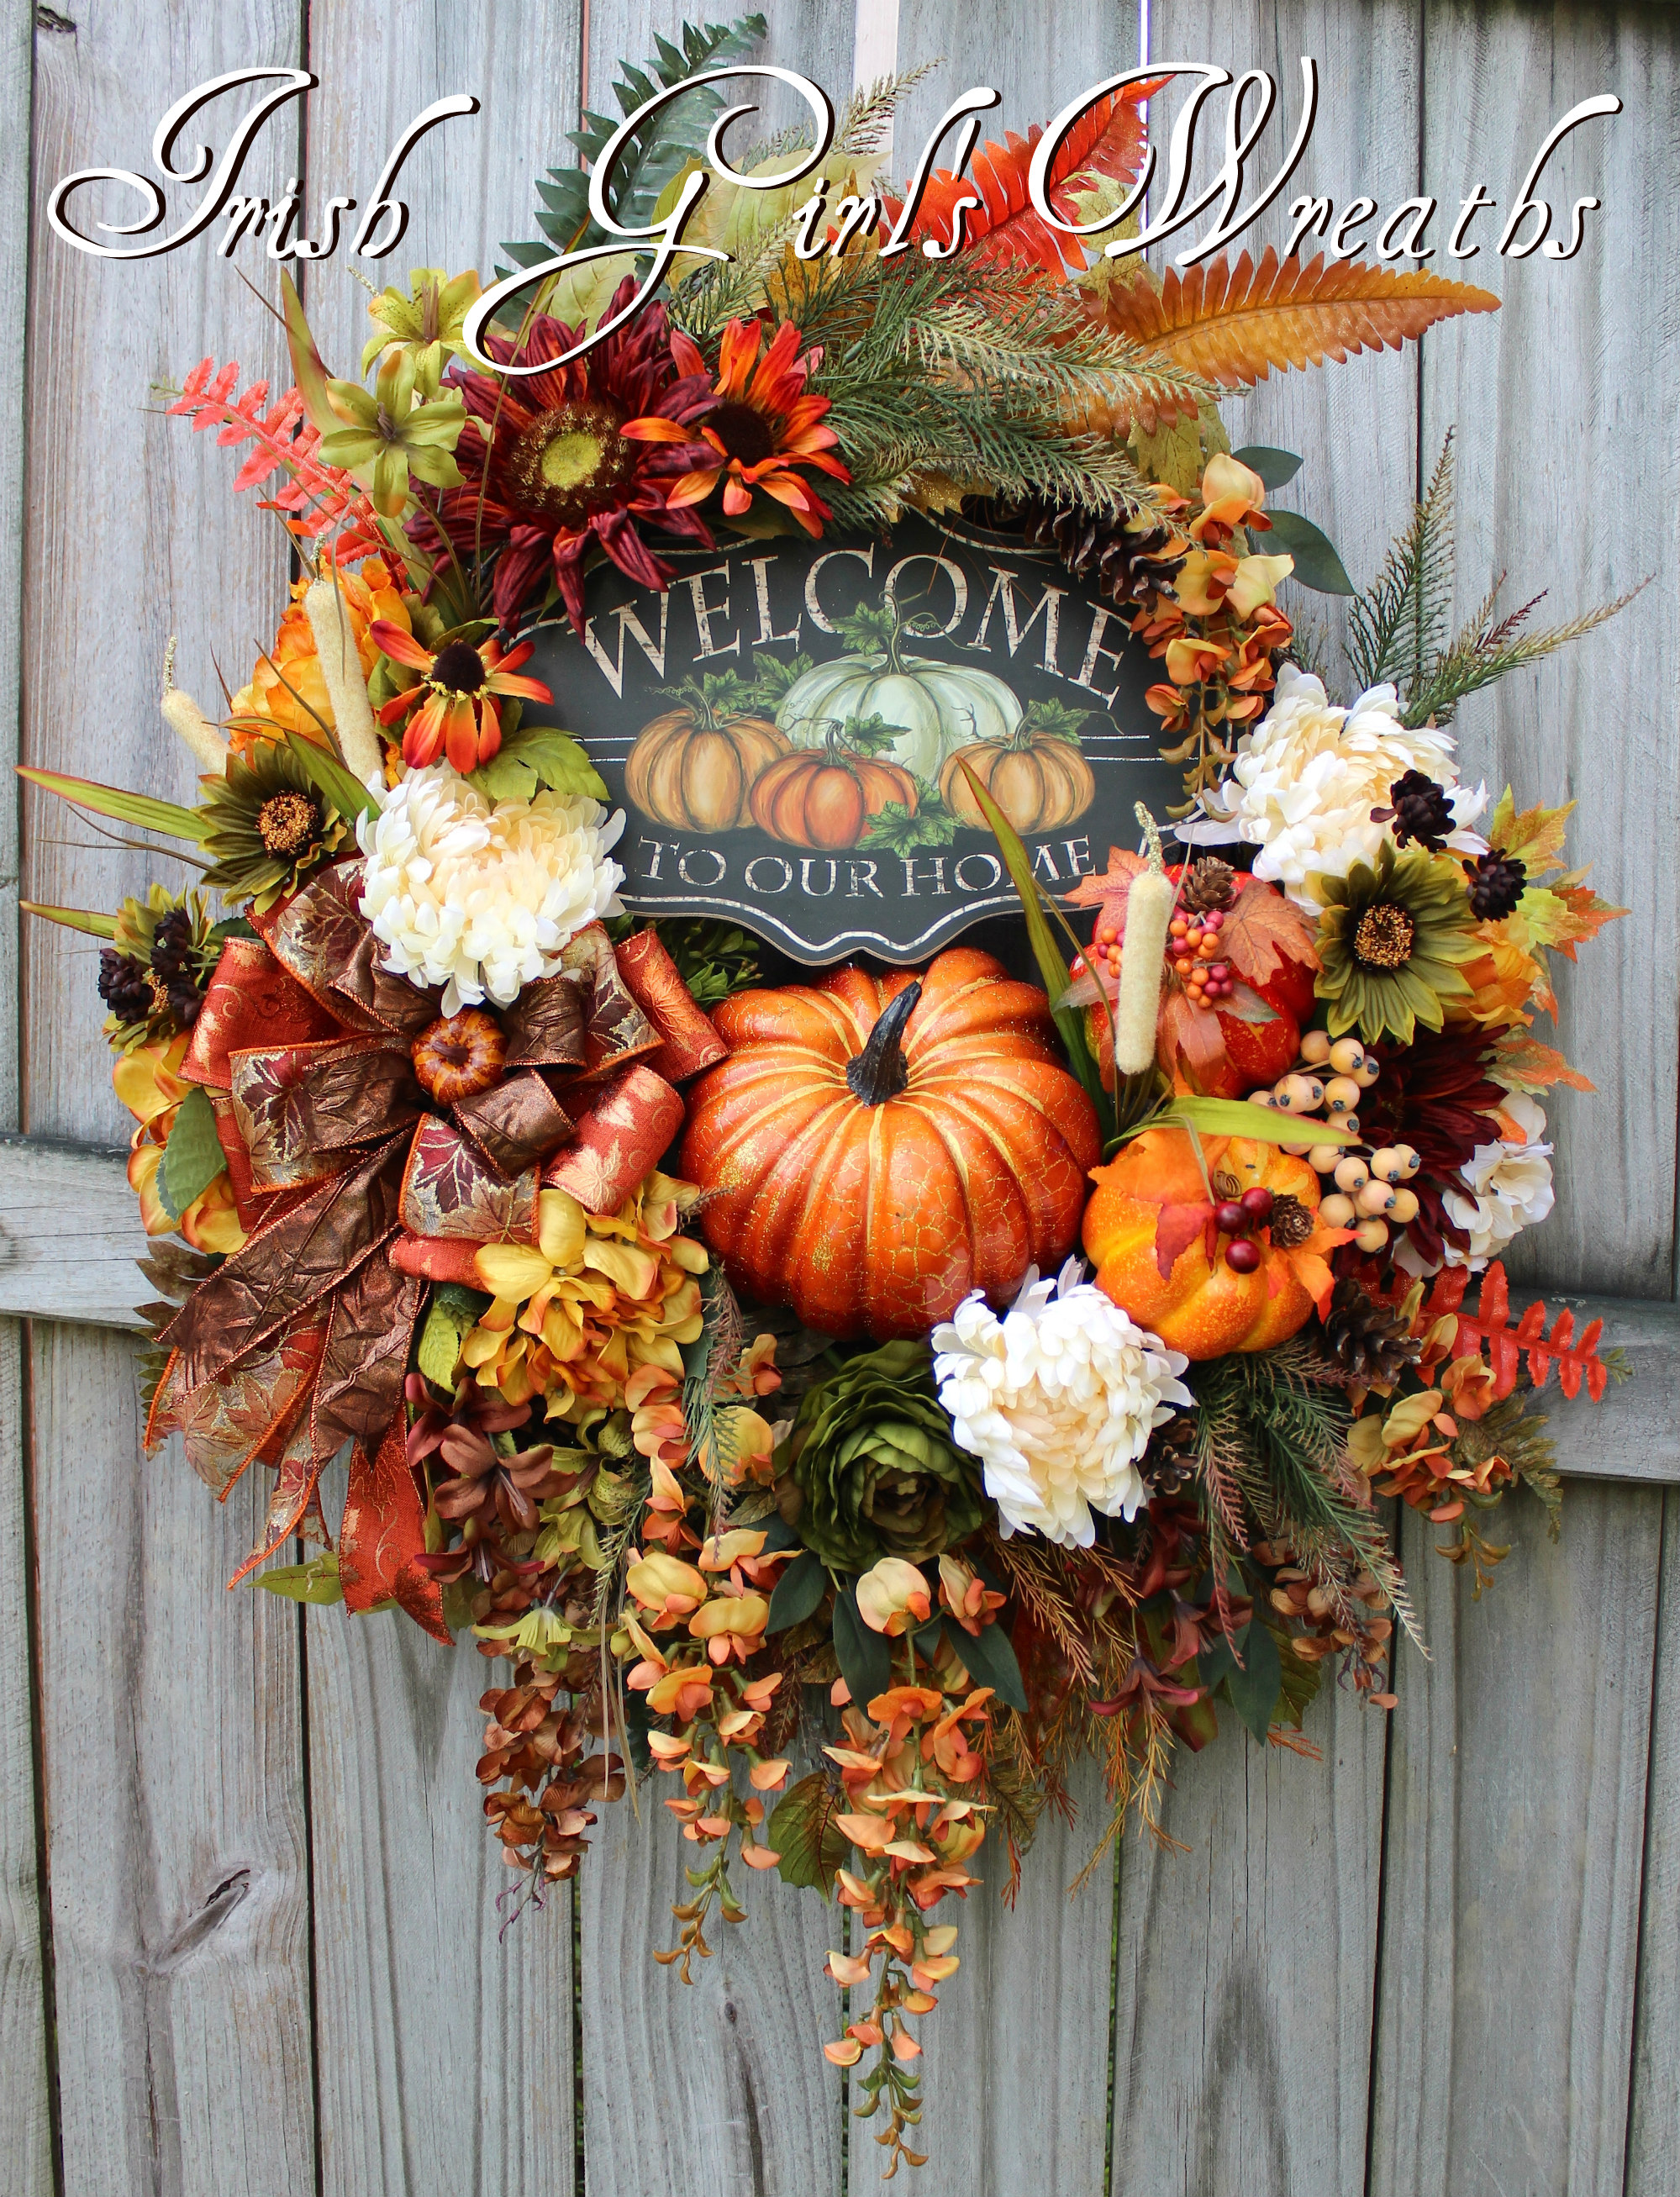 Welcome To Our Home Deluxe Fall Sunflower Wreath, XL Autumn Pumpkin Wreath